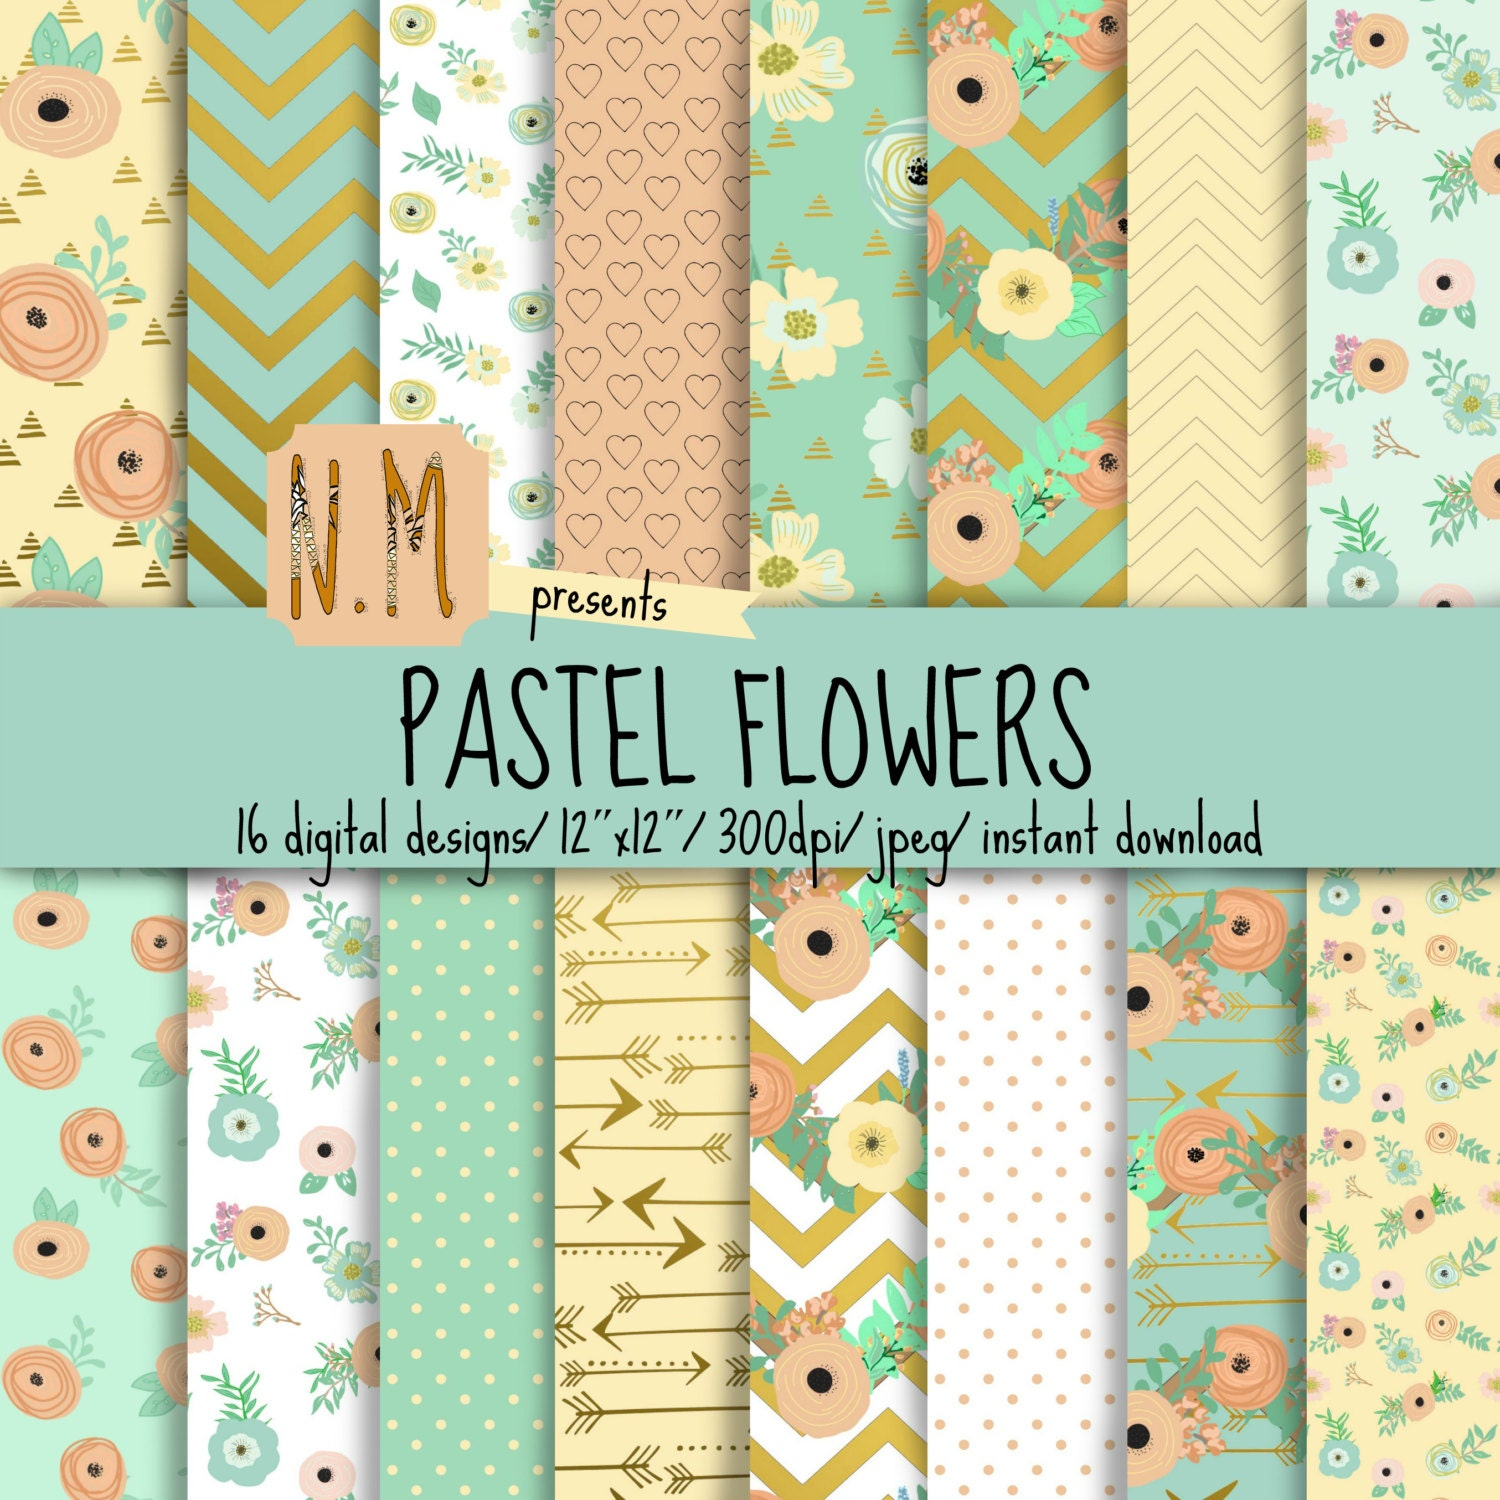 Floral Digital Paper Pack Floral Digital Pattern Pastel Blue Etsy